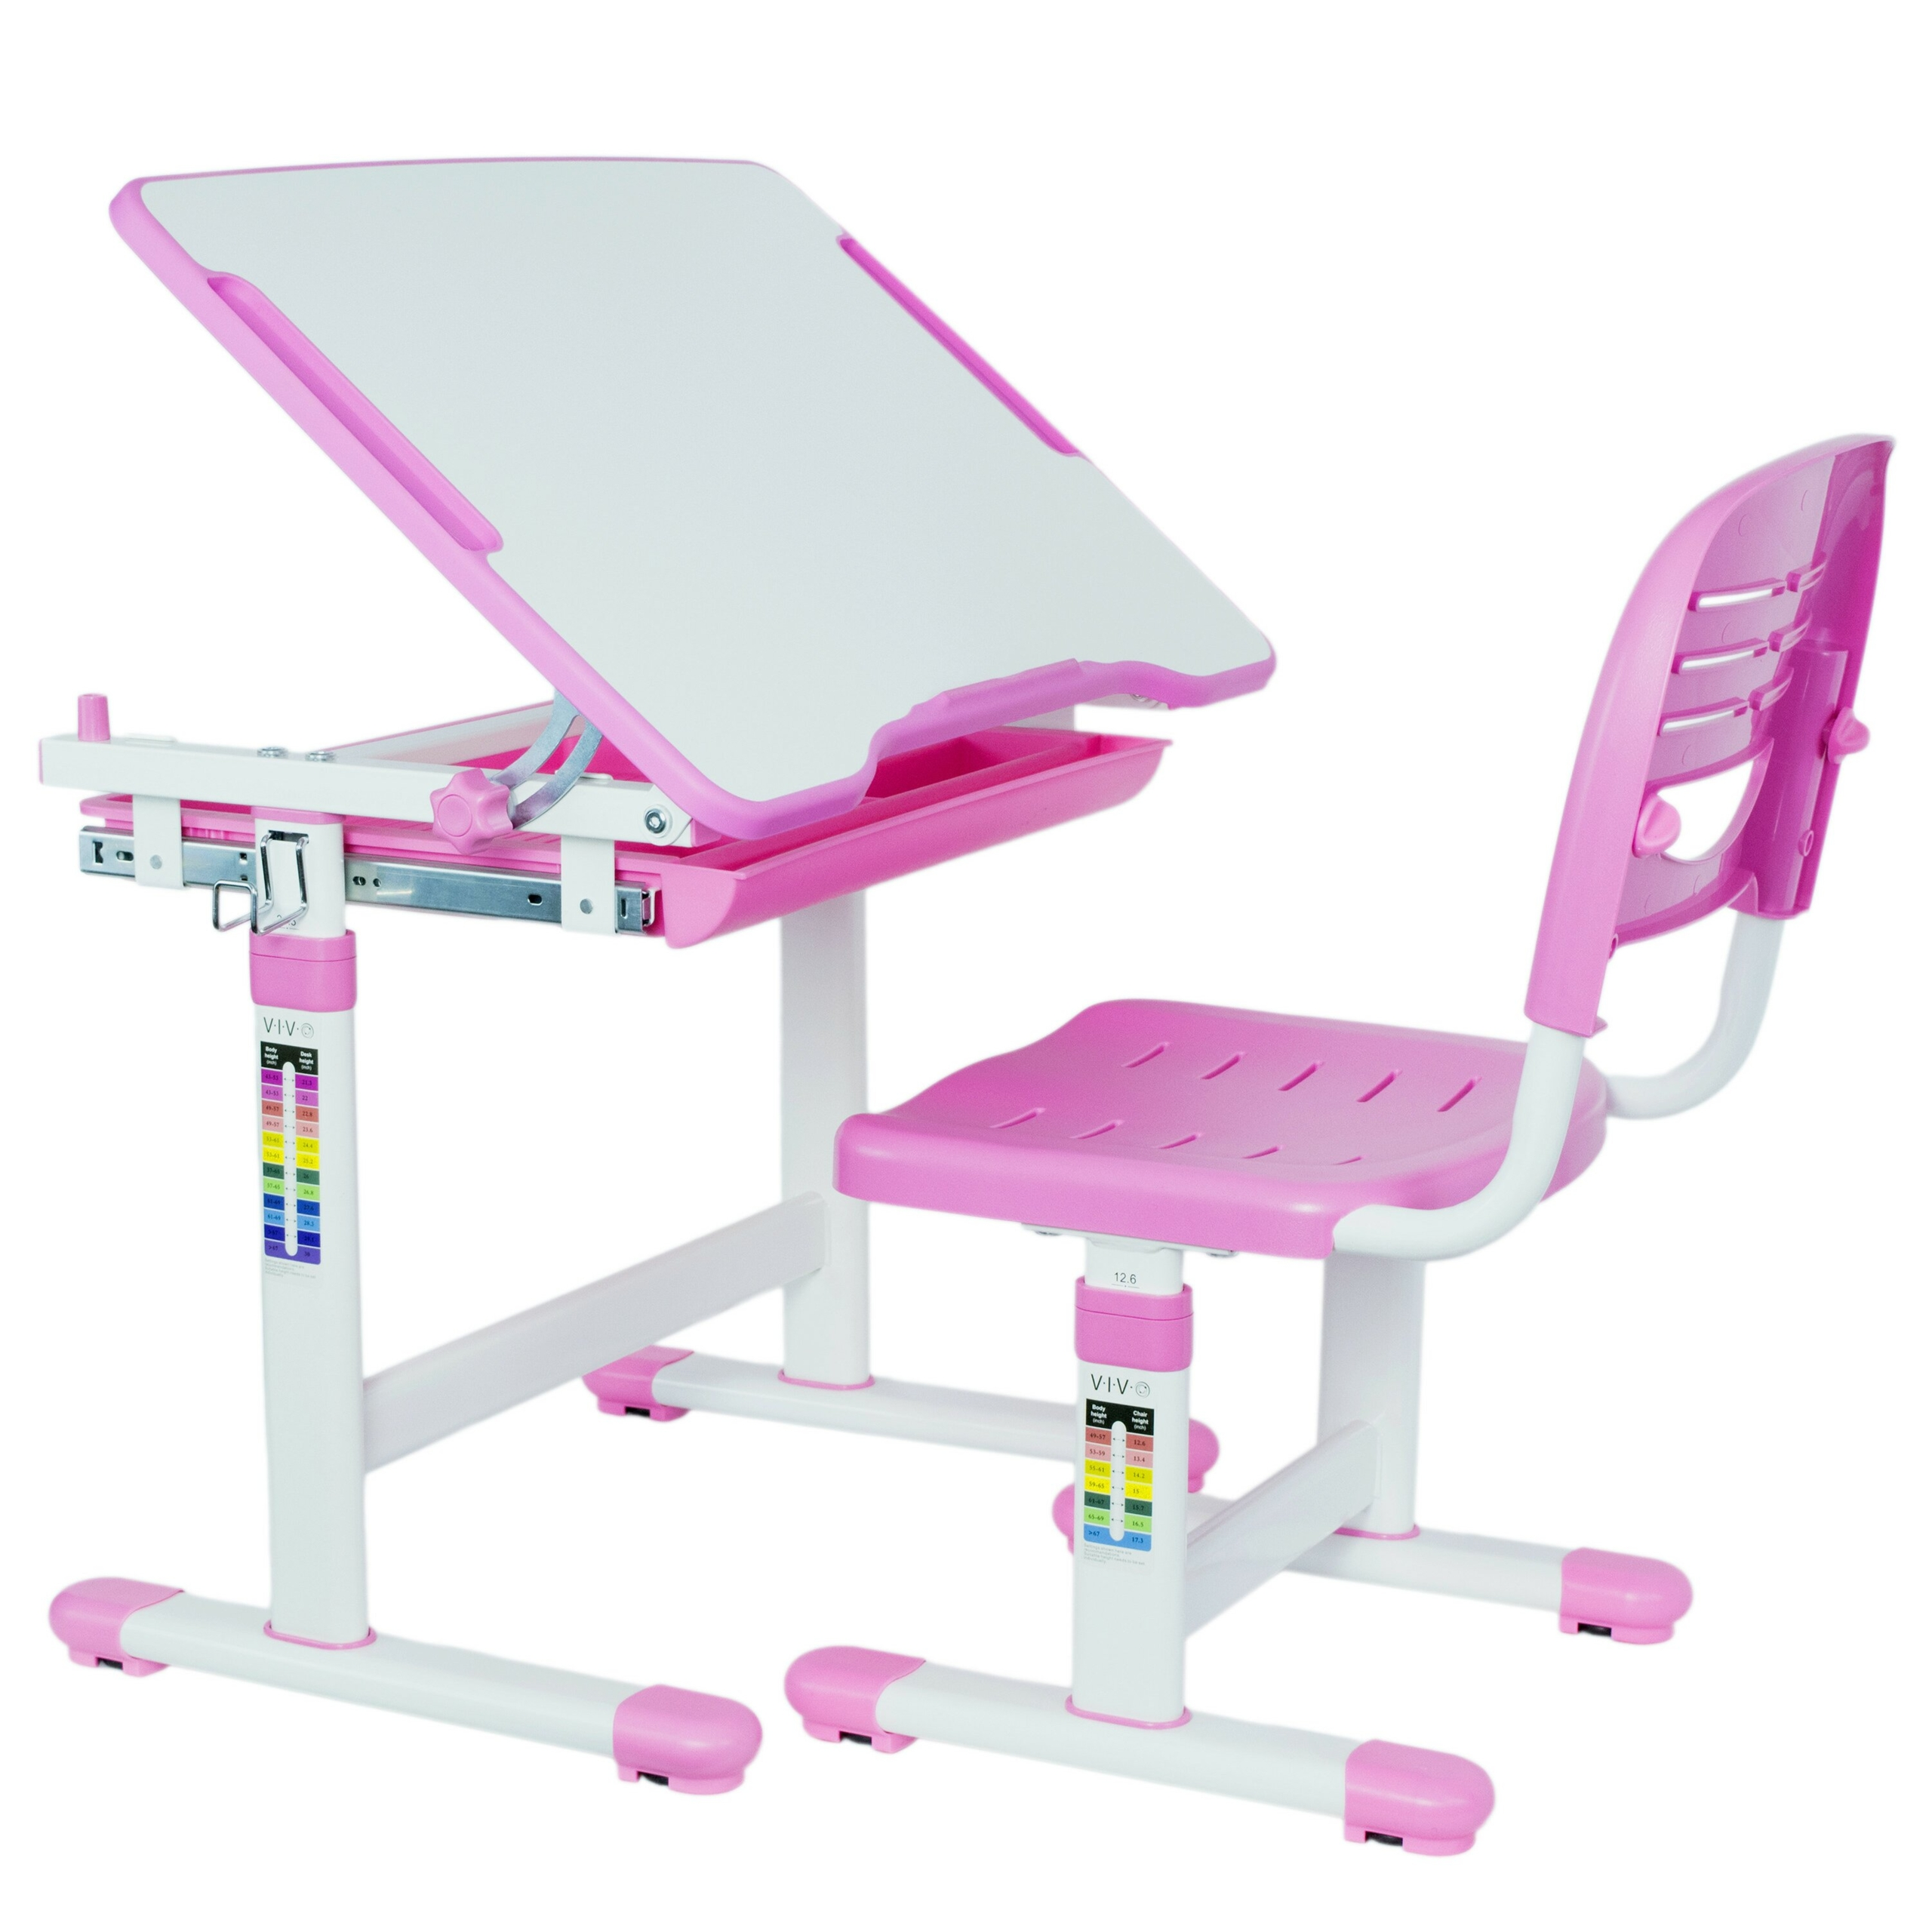 VIVO Height Adjustable Childrens Desk U0026 Chair Kids .